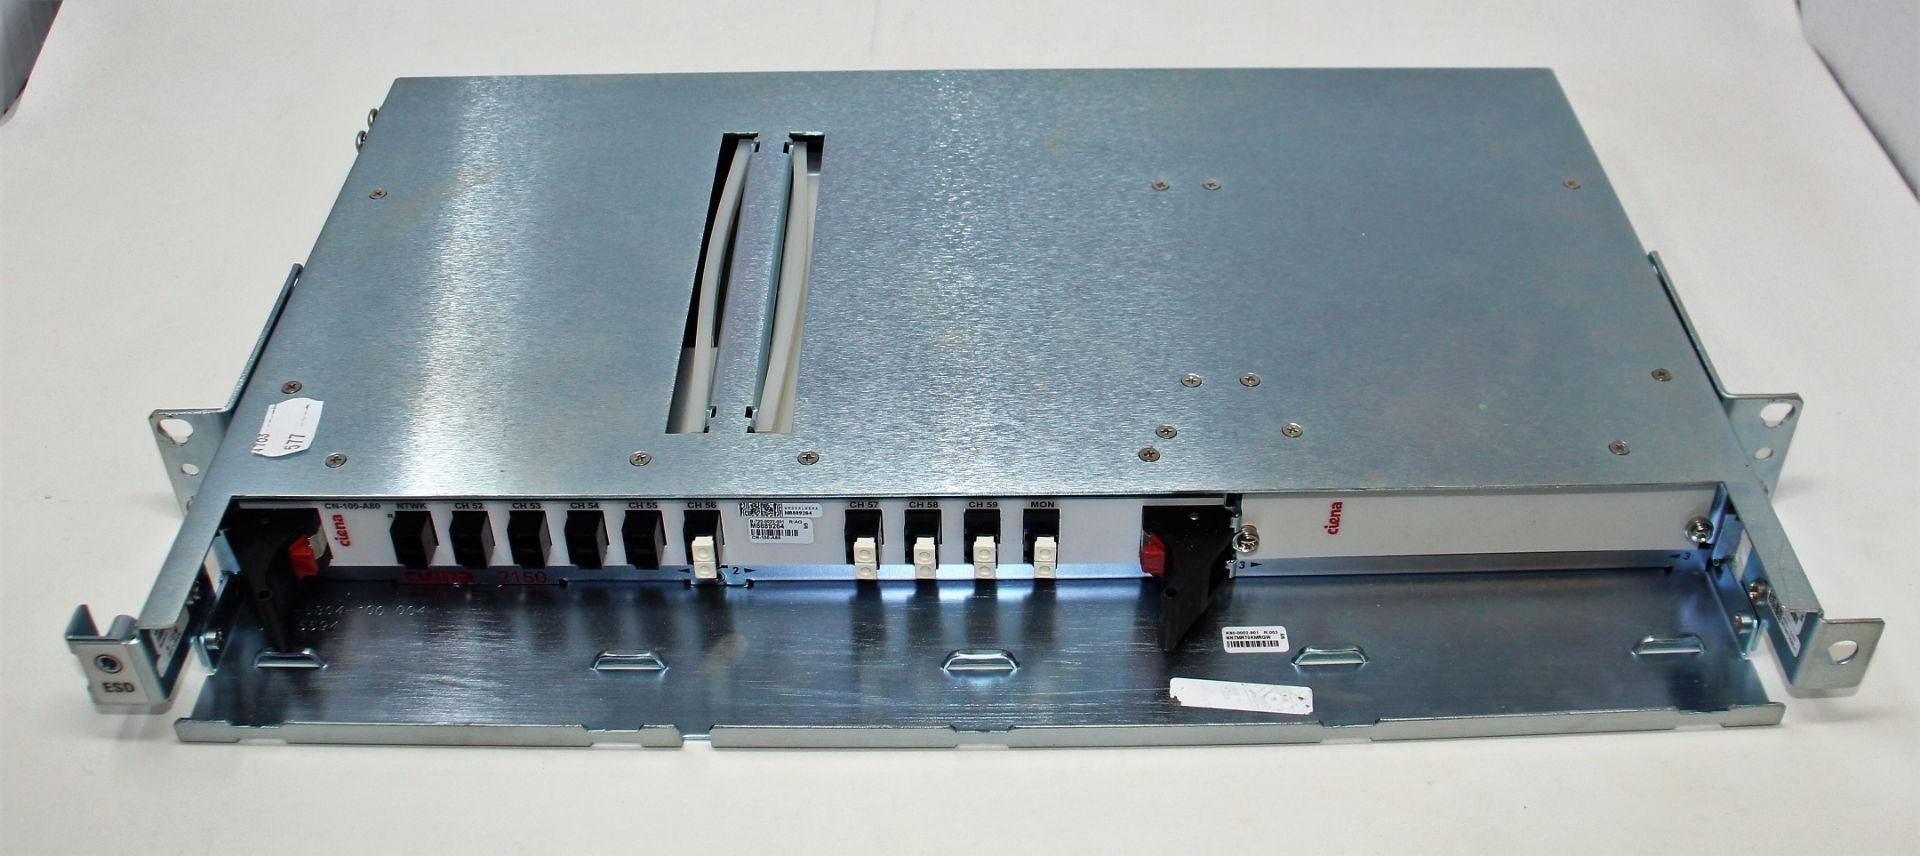 A pre-owned Ciena CN-100-A80 B-720-0022-001 WM0AALWEAA M8889264 DWDM Module (Untested, sold as - Image 2 of 3